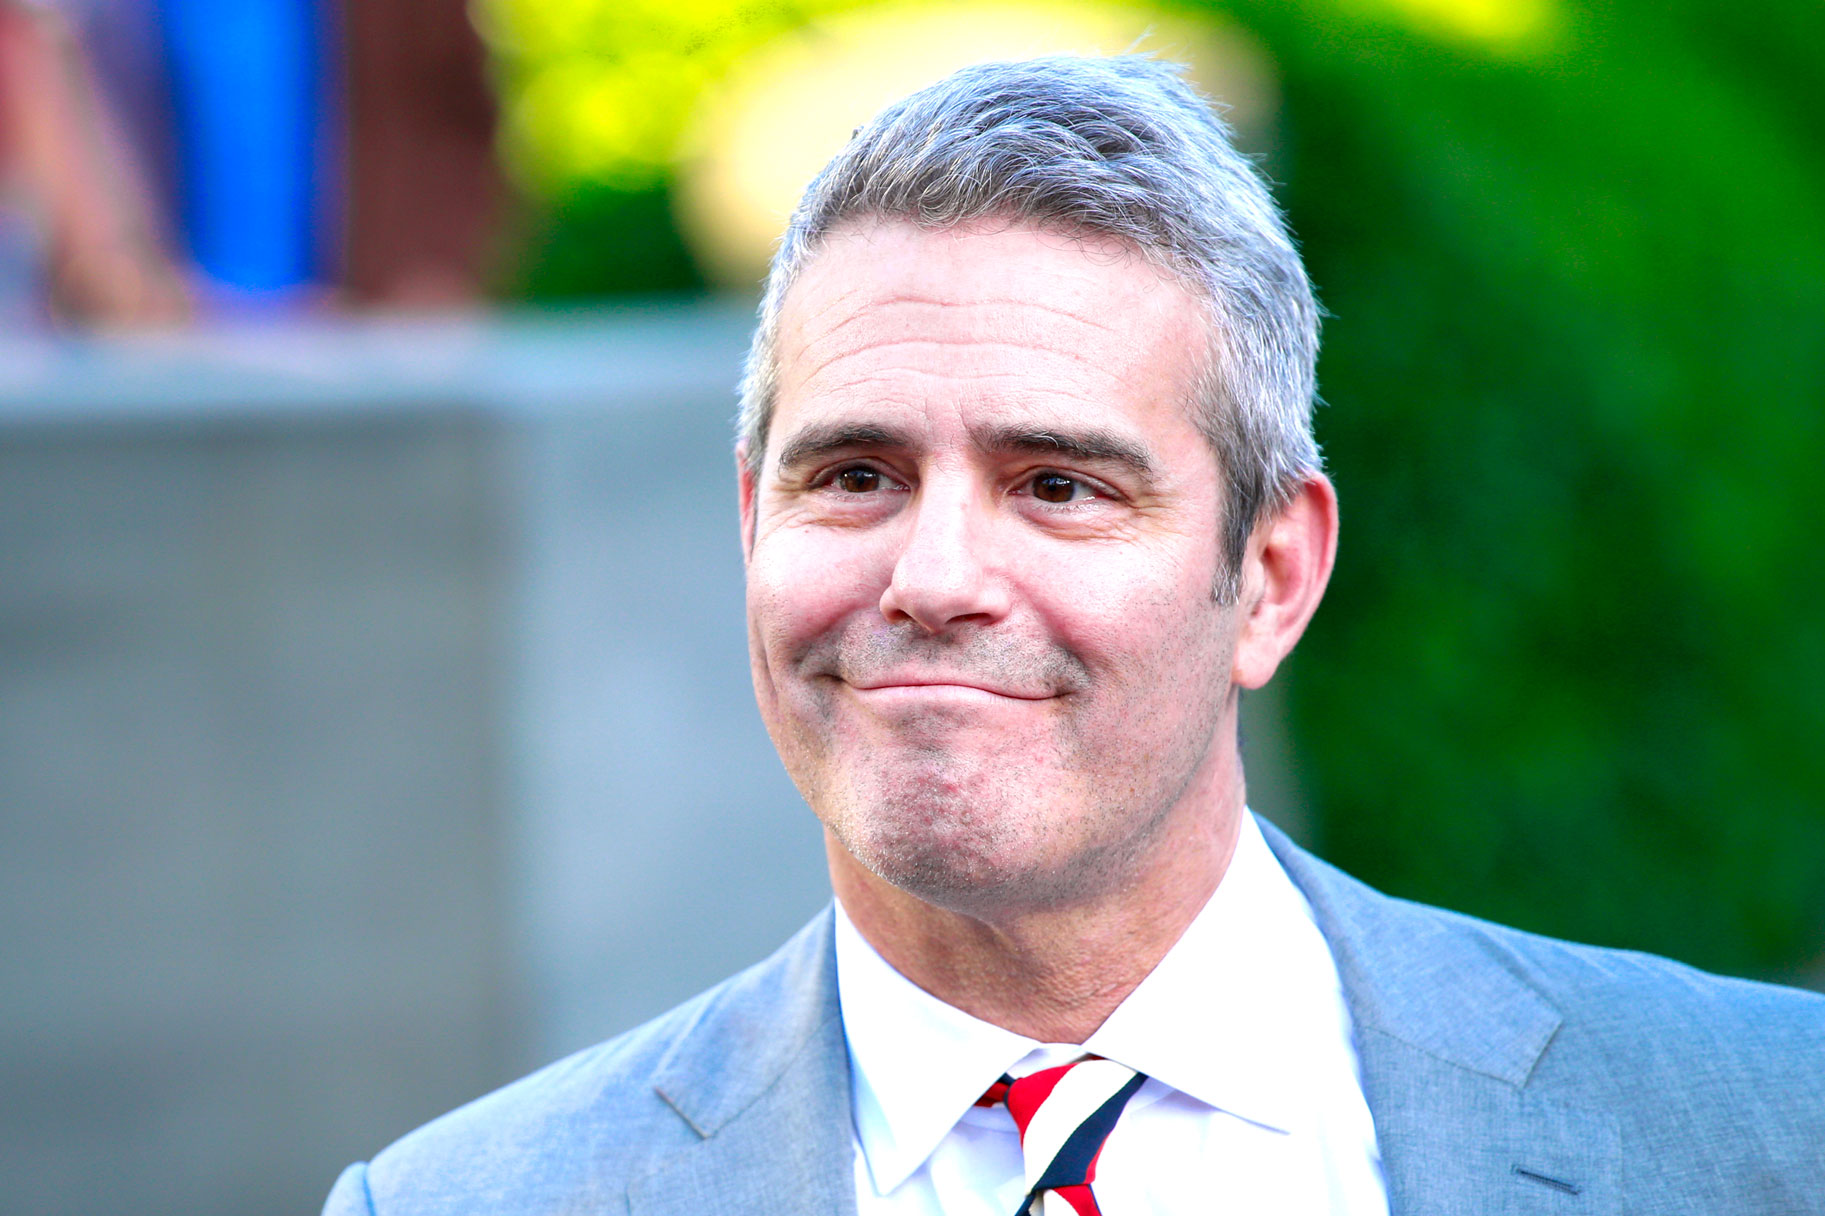 Andy Cohen Surrogacy